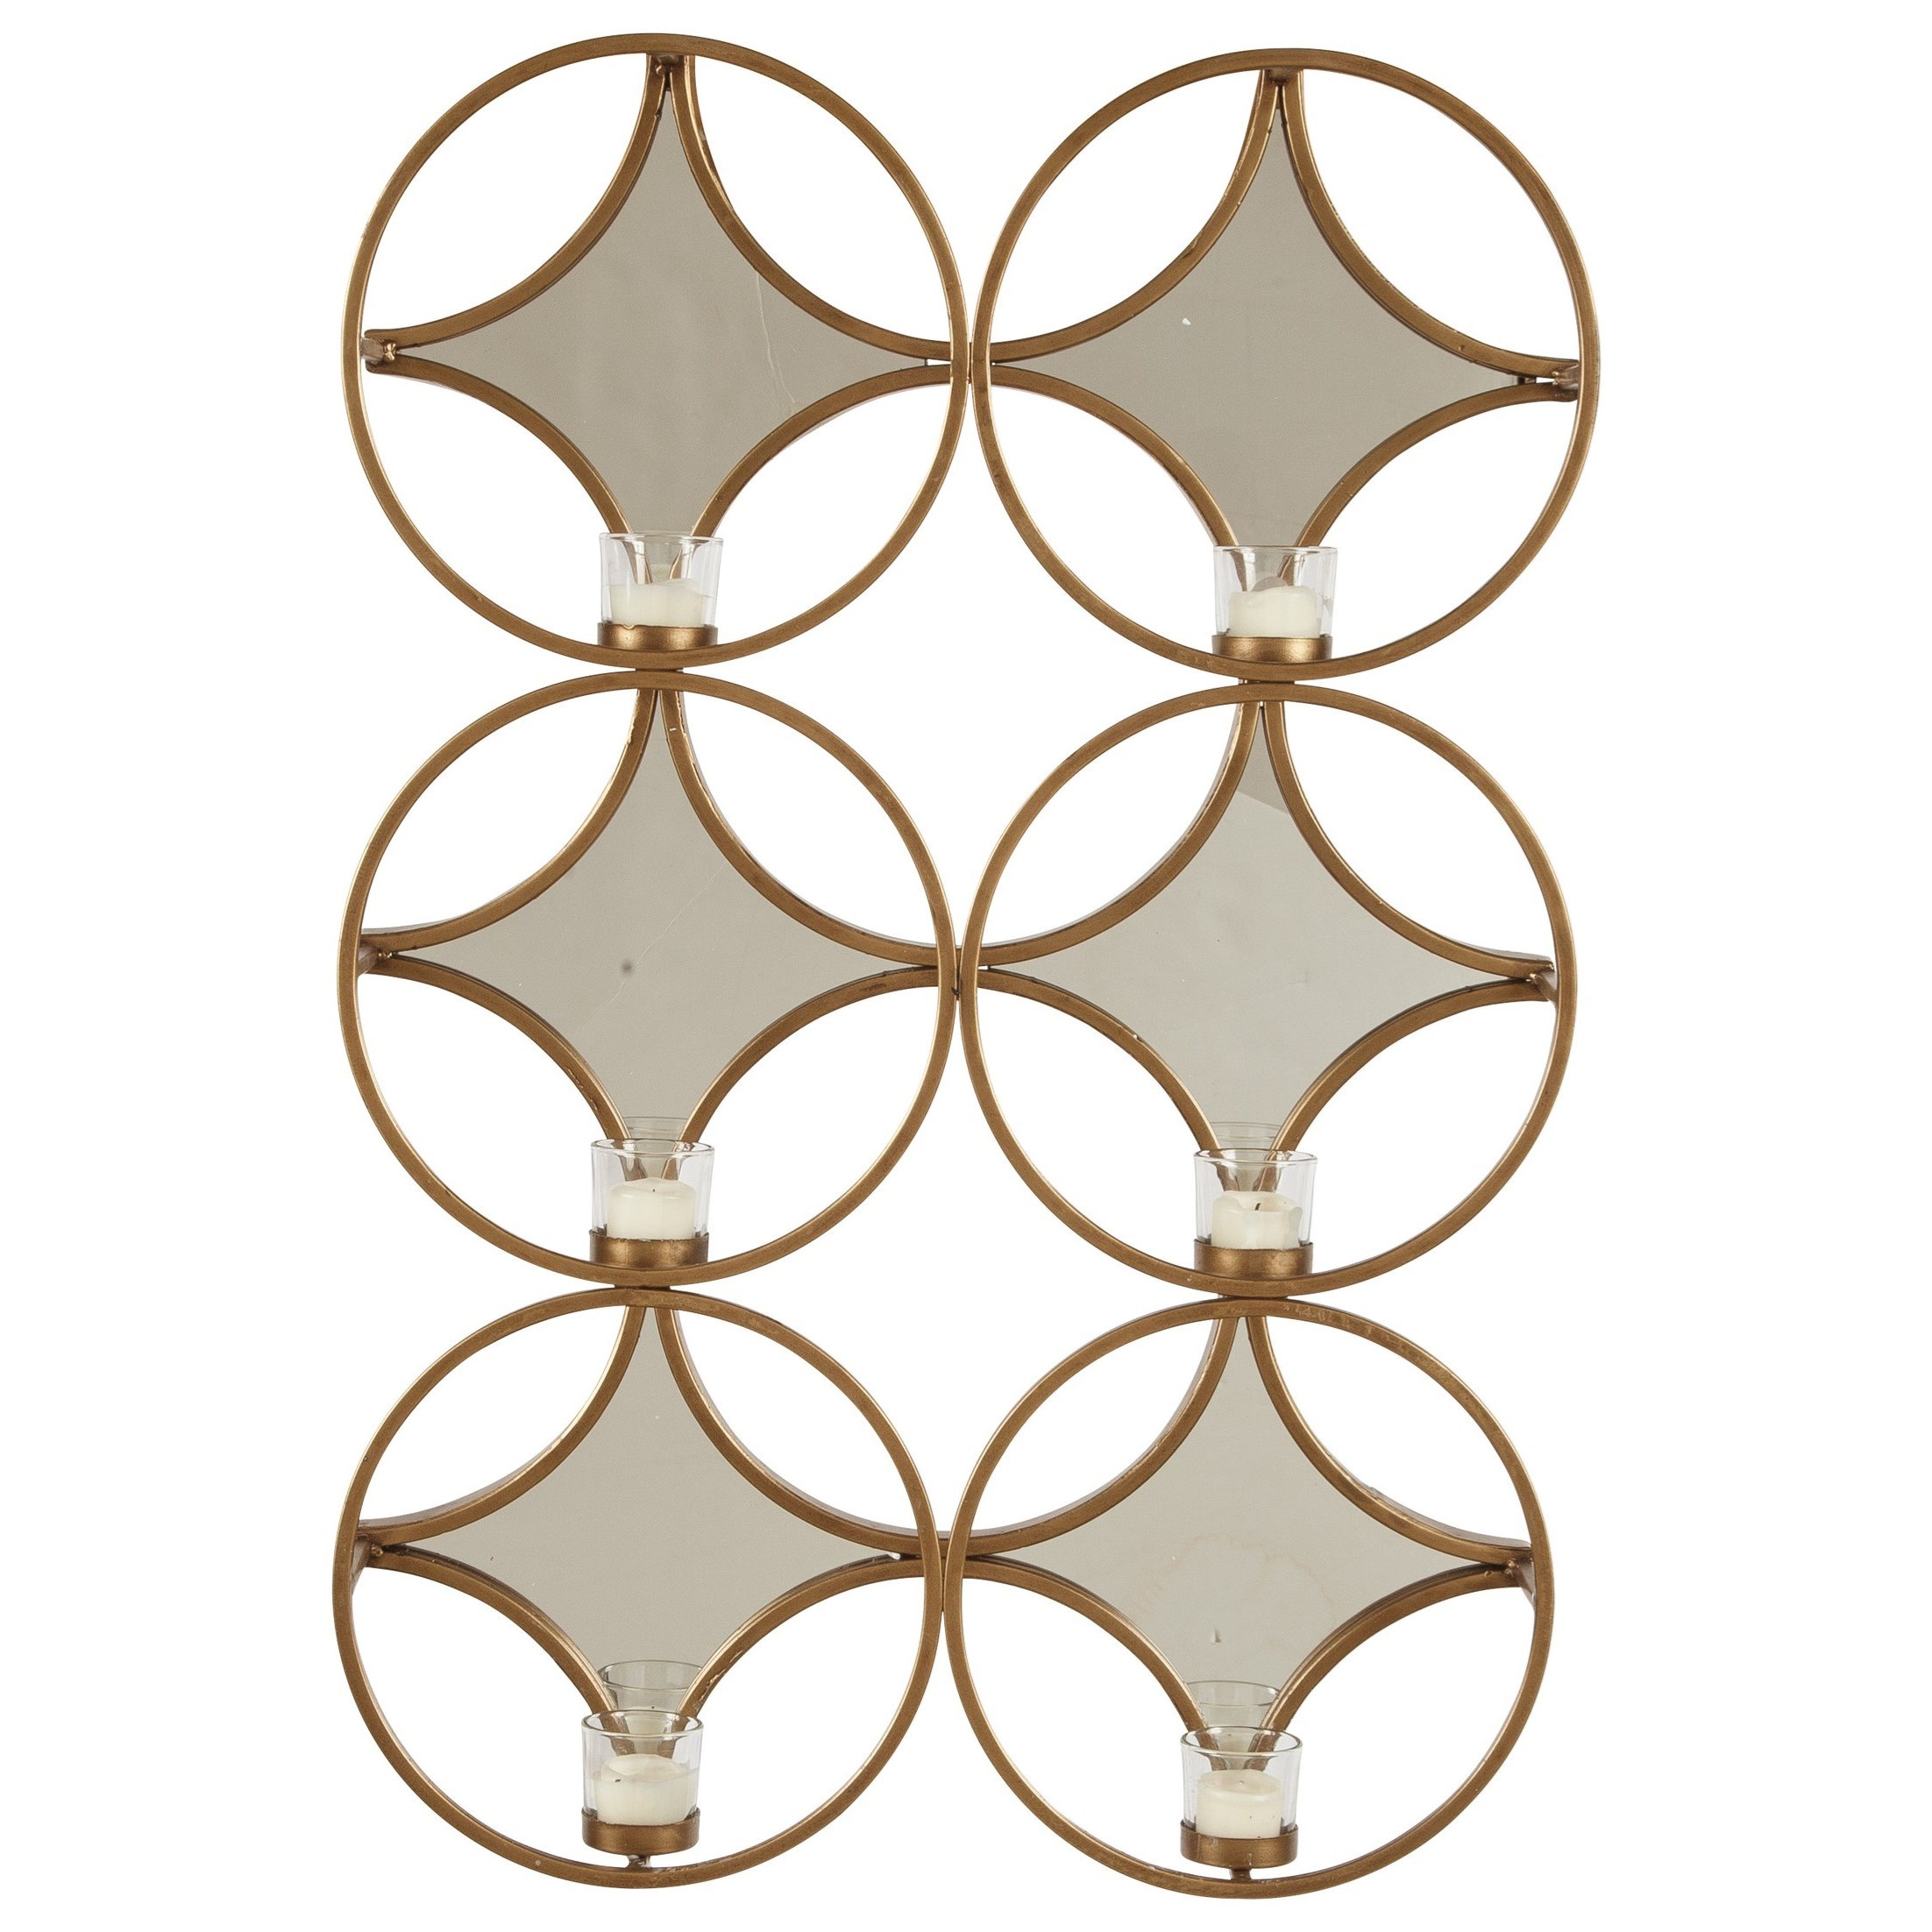 Ashley Signature Design Accent Mirrors Emilia Gold Finish Wall Sconce - Item Number: A8010157